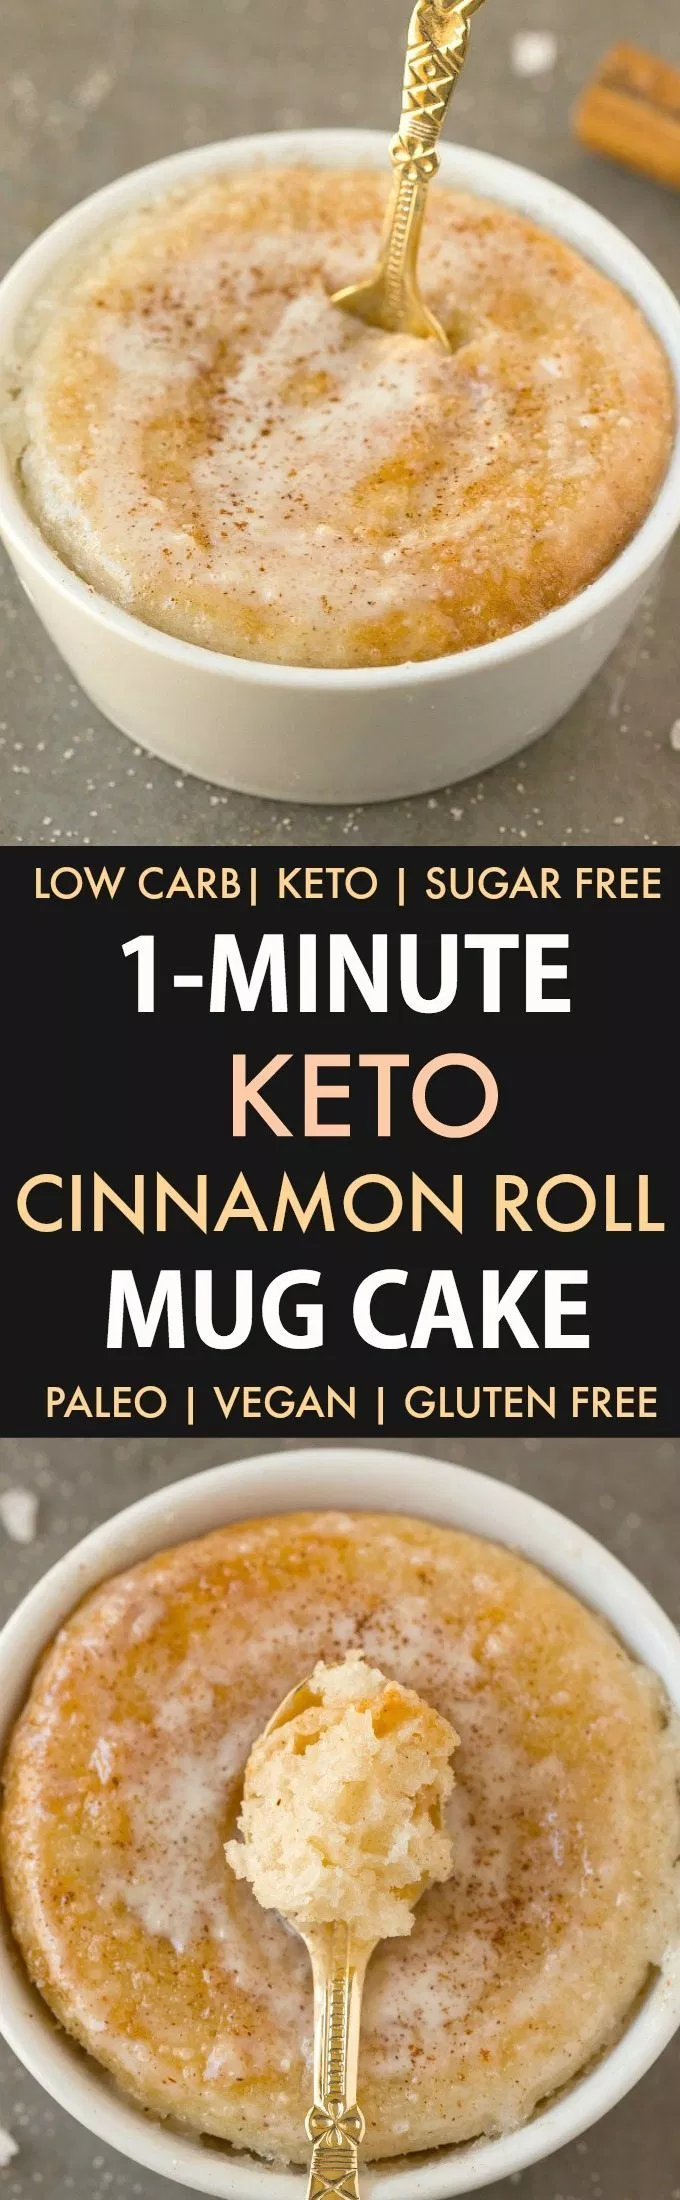 Healthy 1 Minute Low Carb Cinnamon Roll Mug Cake #ketodesserts